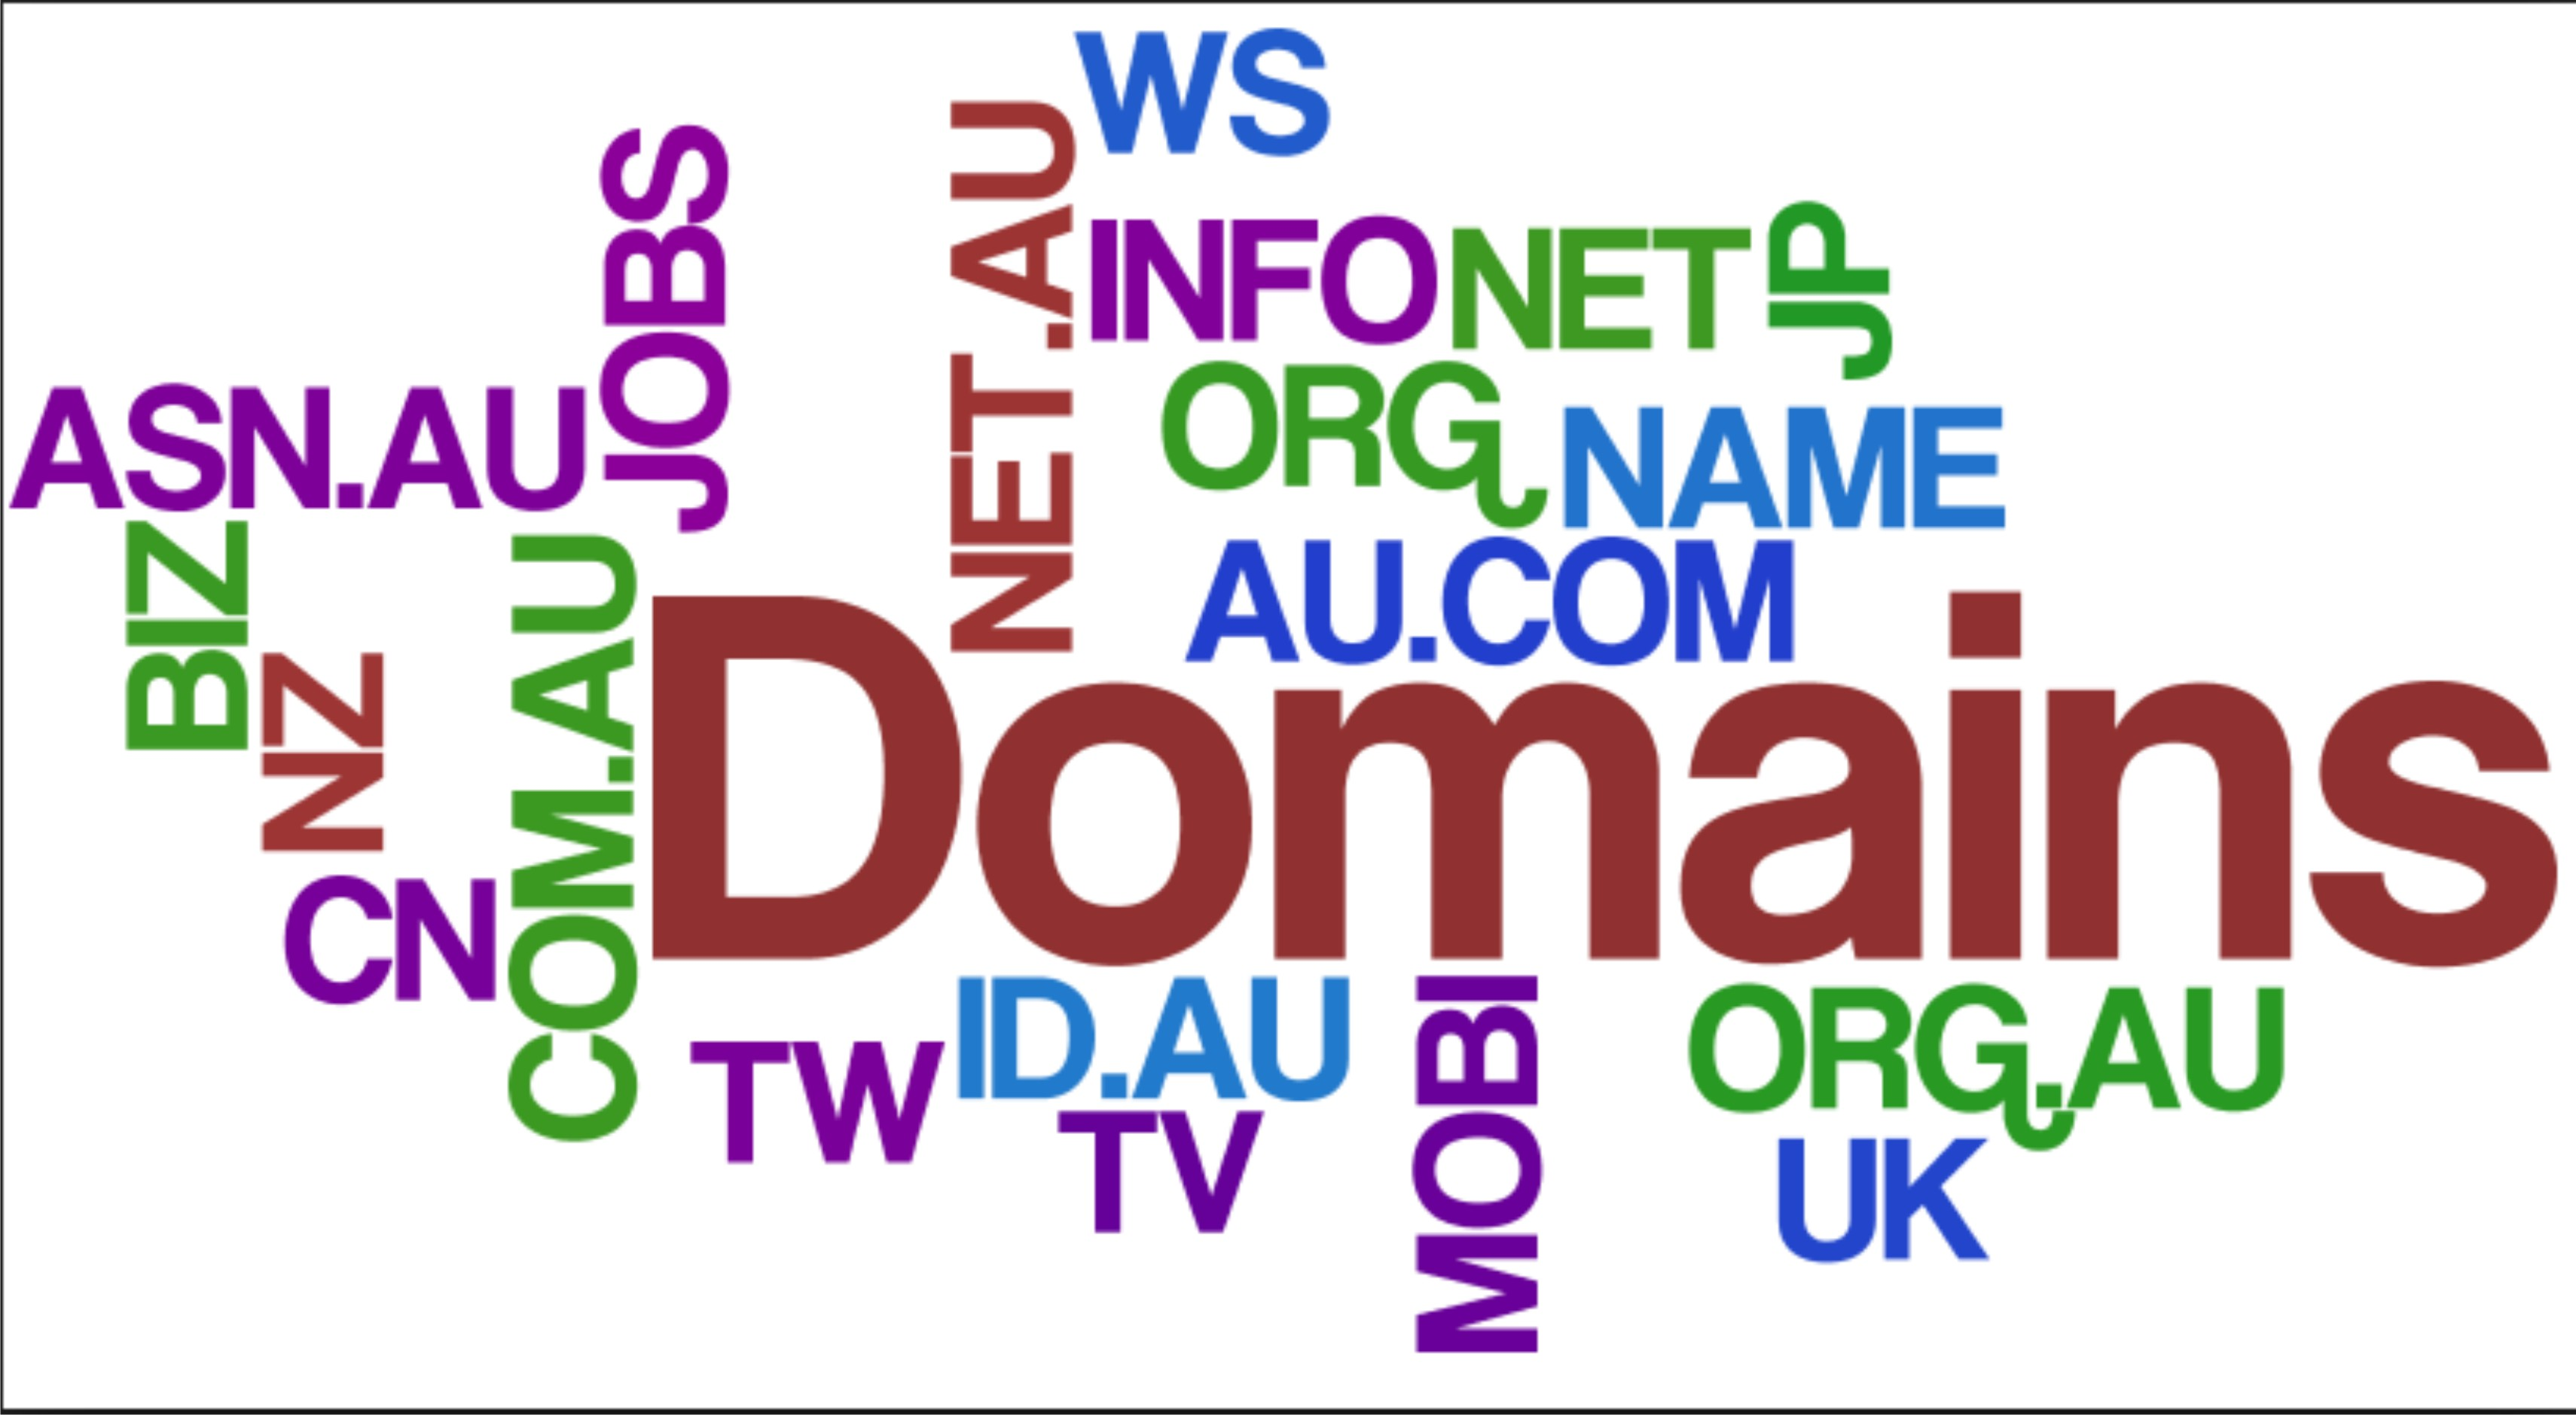 Ada banyak macam nama domain yang tersedia dan masing - masing mempunyai syarat untuk pendaftaran, nama domain website yang kami rangkum, domain website domain website gratis domain website komersial domain website gratis dari pemerintah domain website adalah domain website yang komersial domain website bersifat komersial